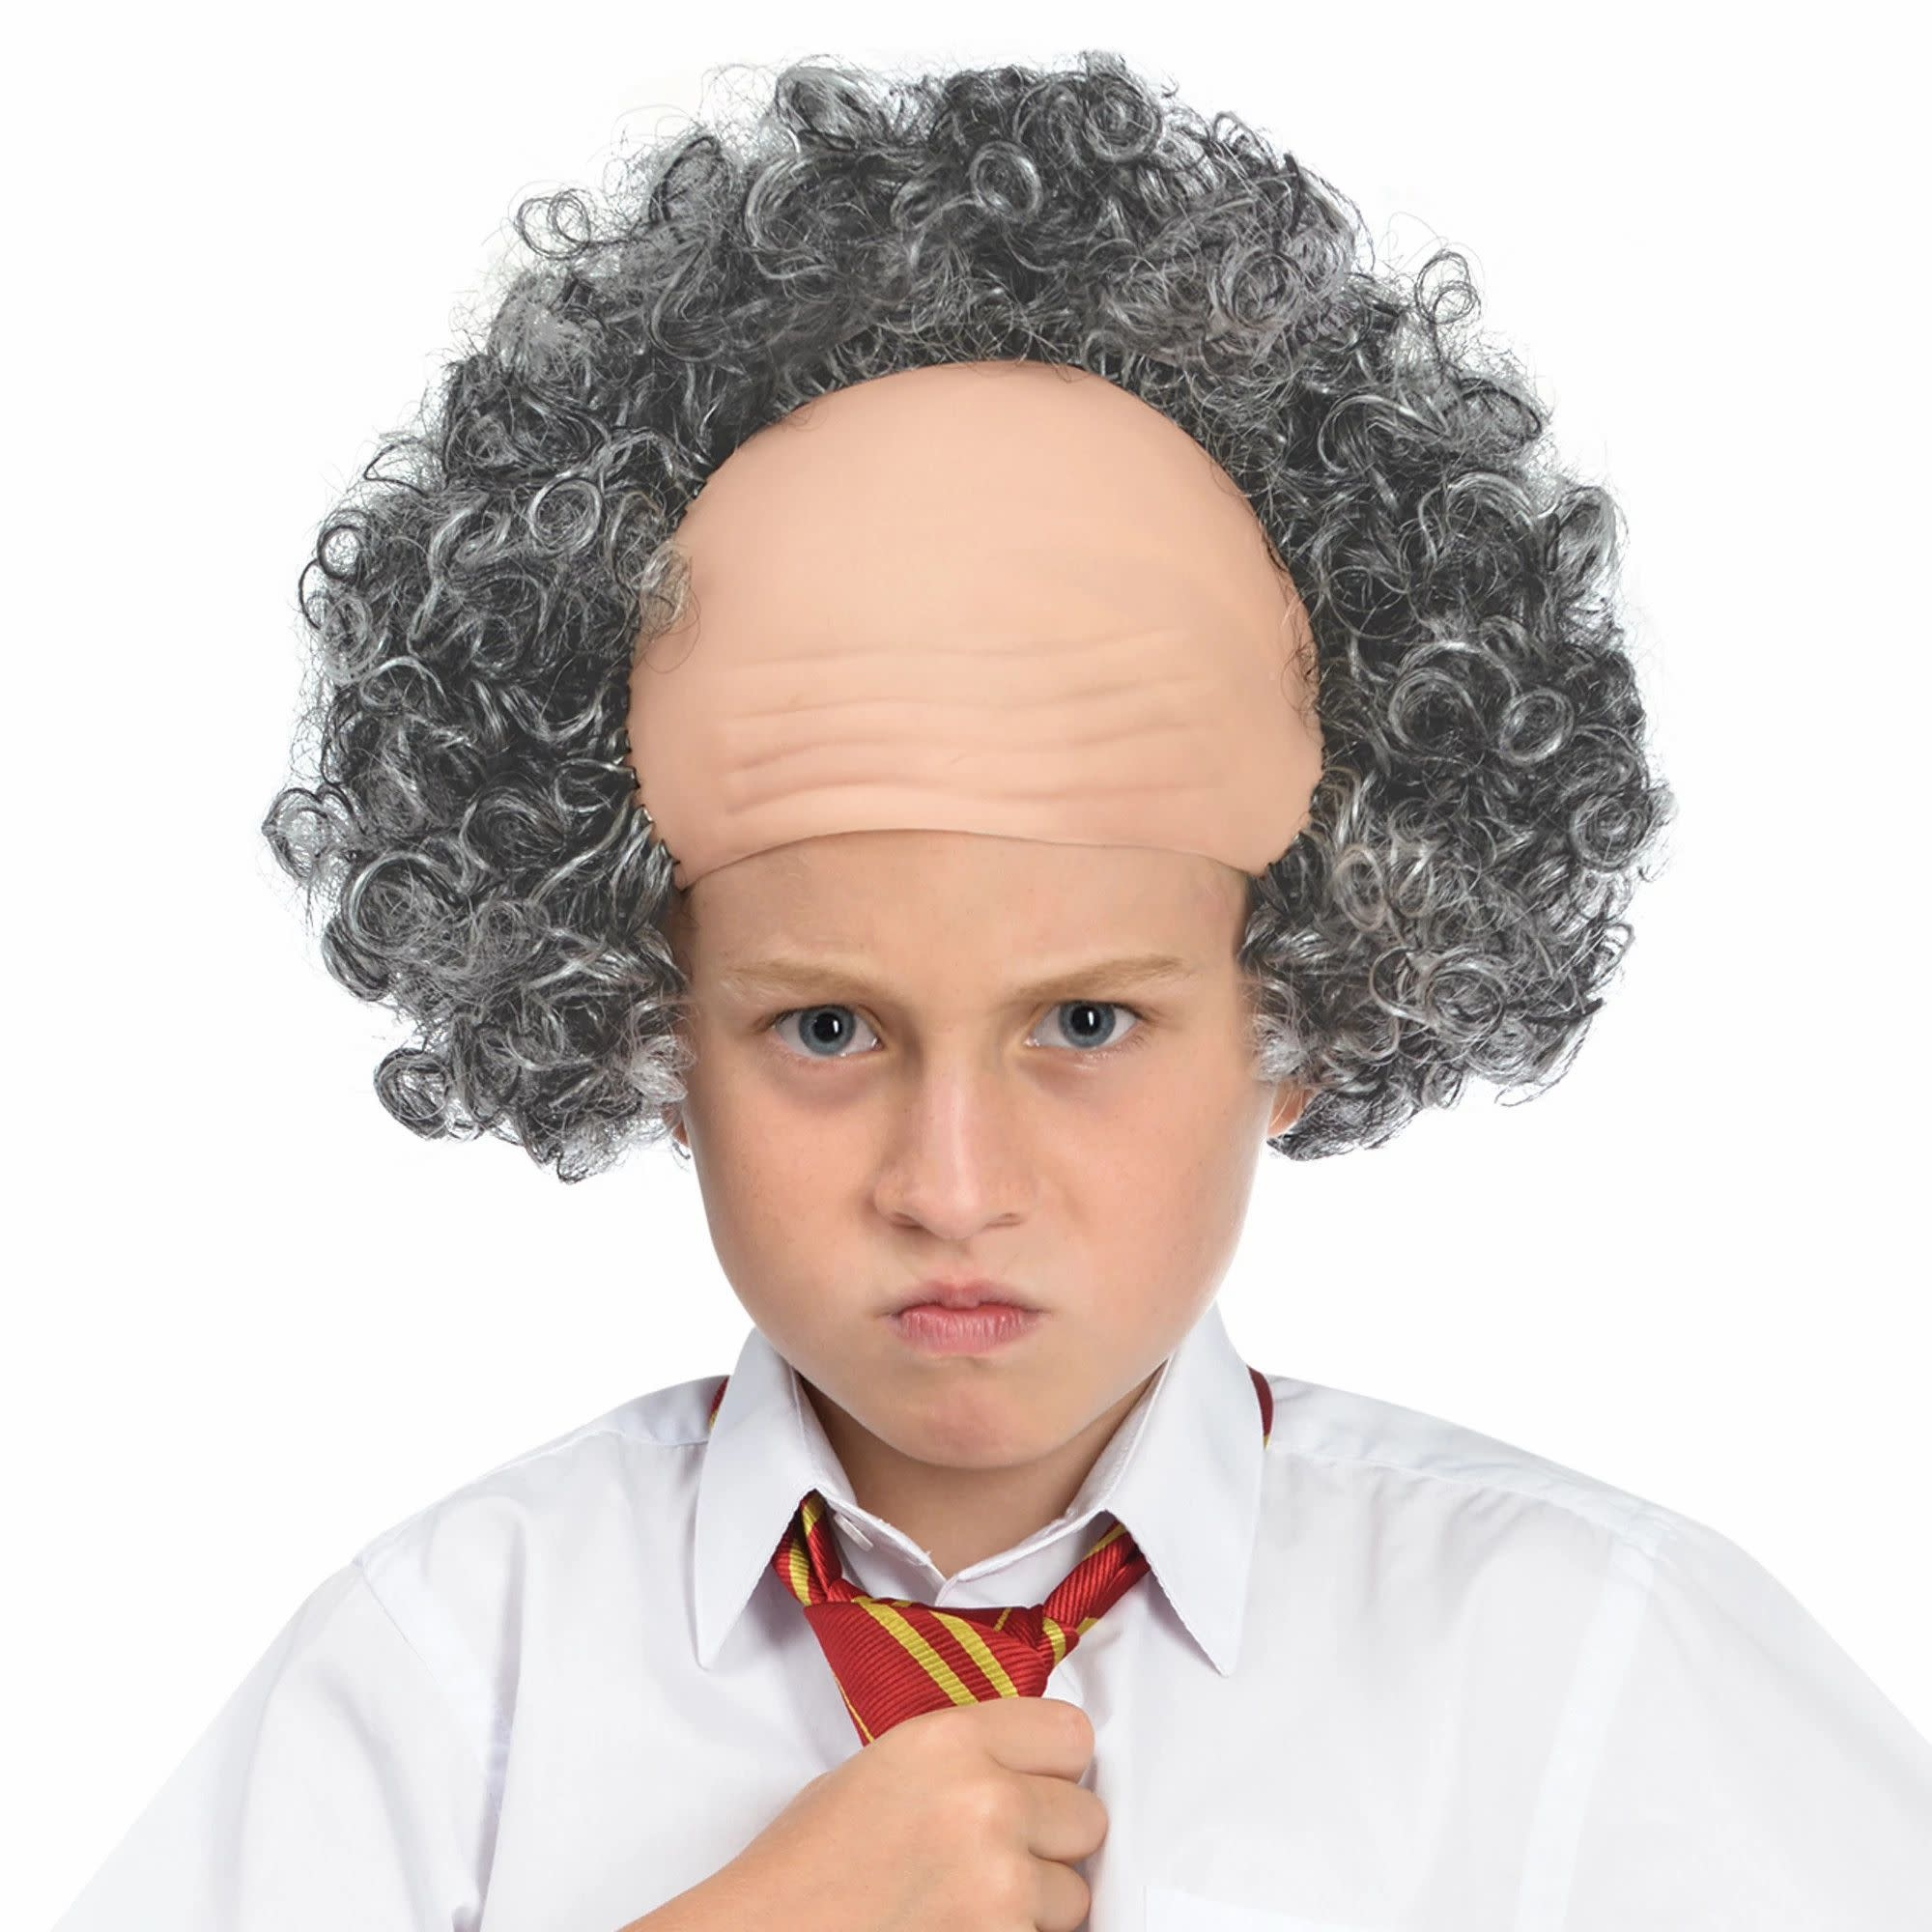 Child Bald Cap With Hair Wig